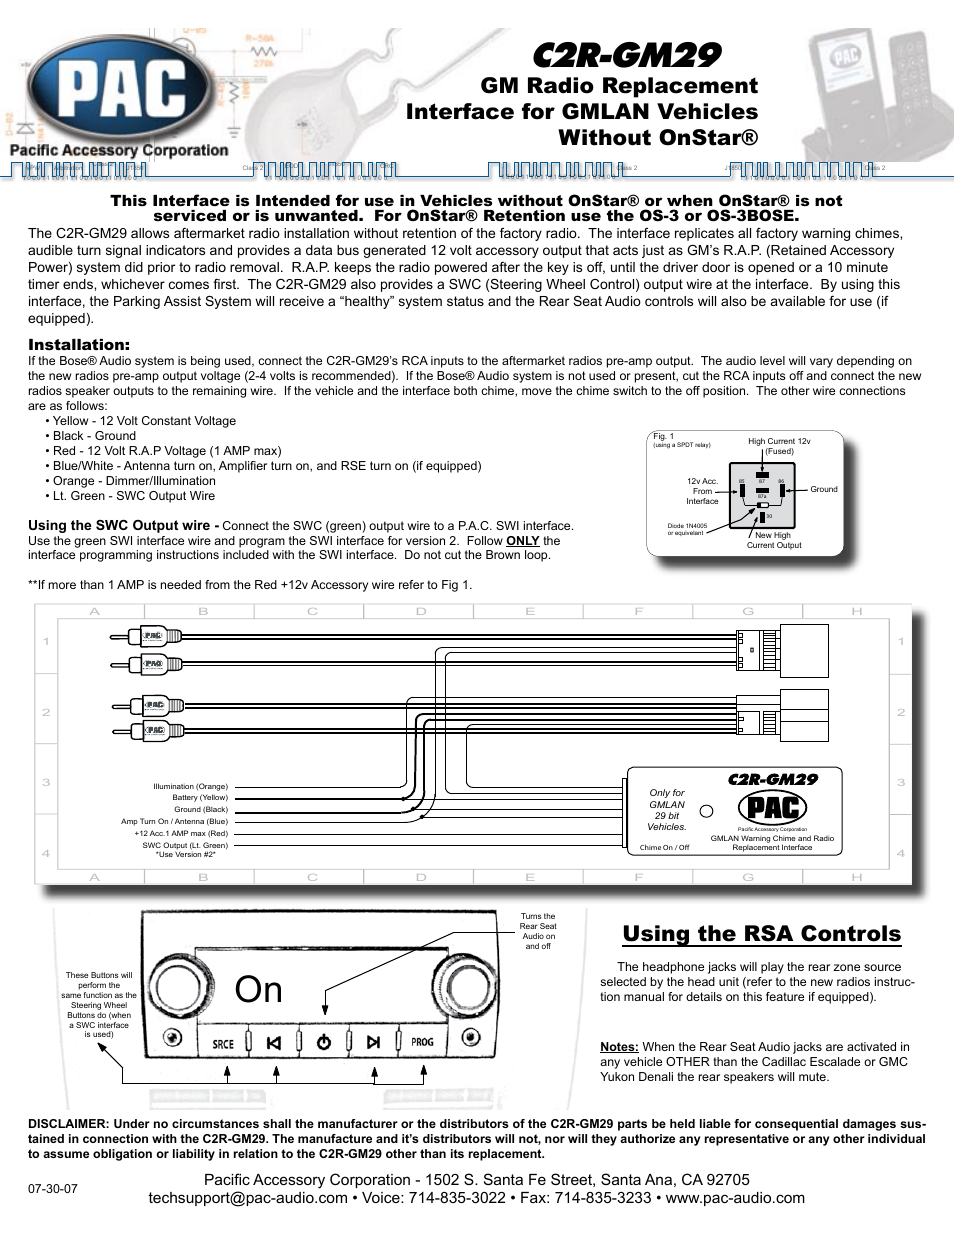 Radio Wiring Diagram Gm Chime Interface Library Axxess Gmos 04 Pac C2r Gm29 User Manual 2 Pages